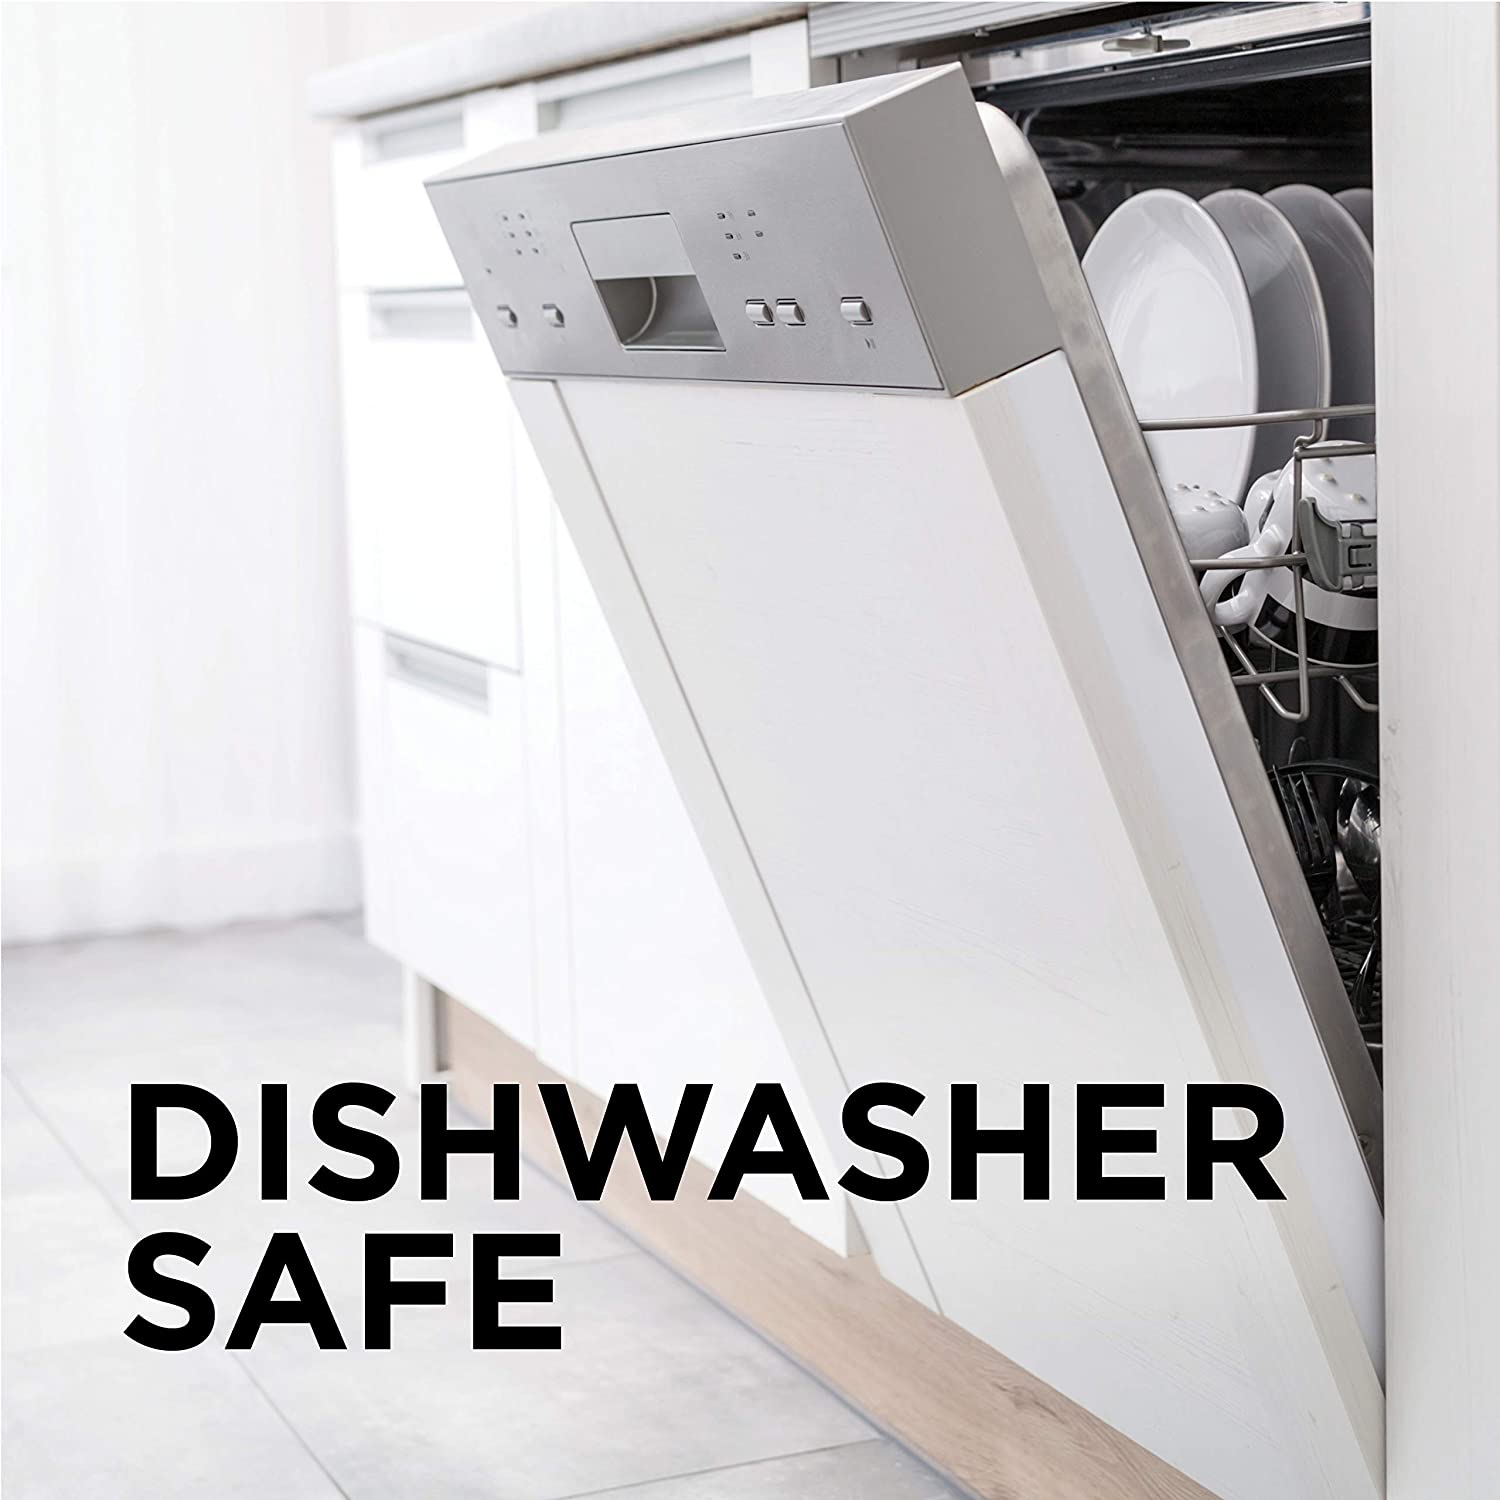 All parts are dishwasher safe.